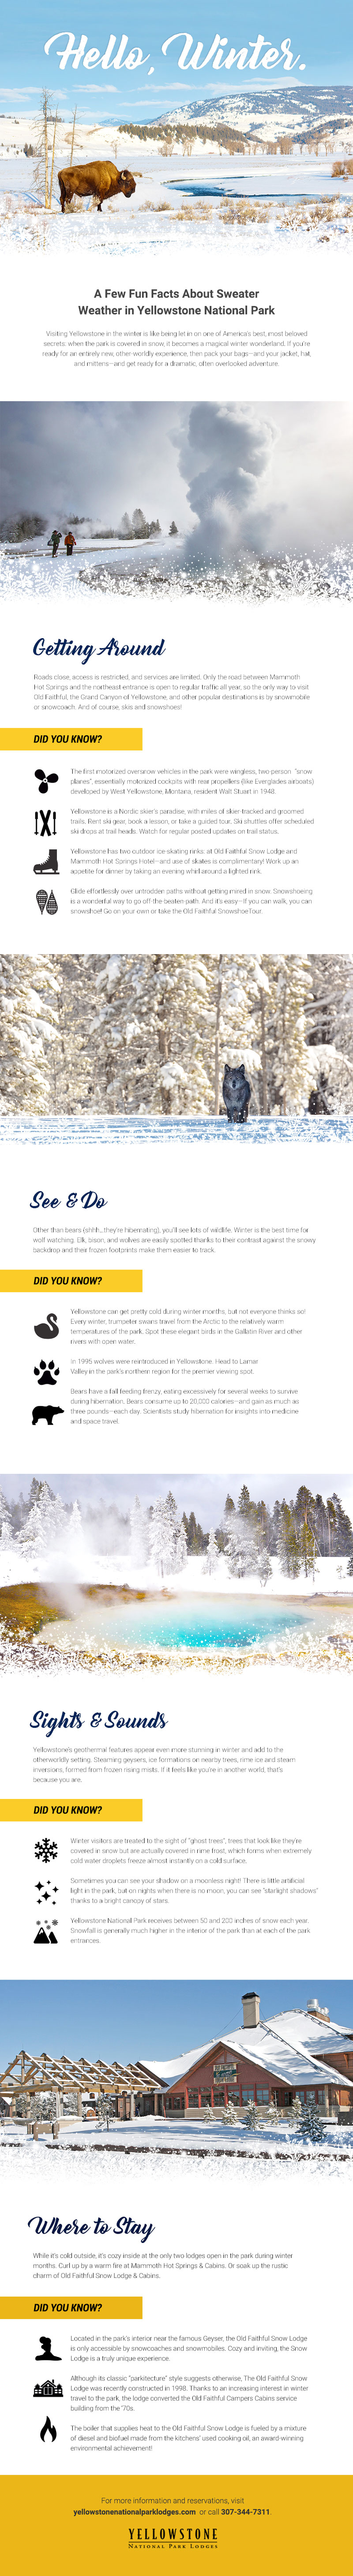 Yellowstone winter travel tips infographic